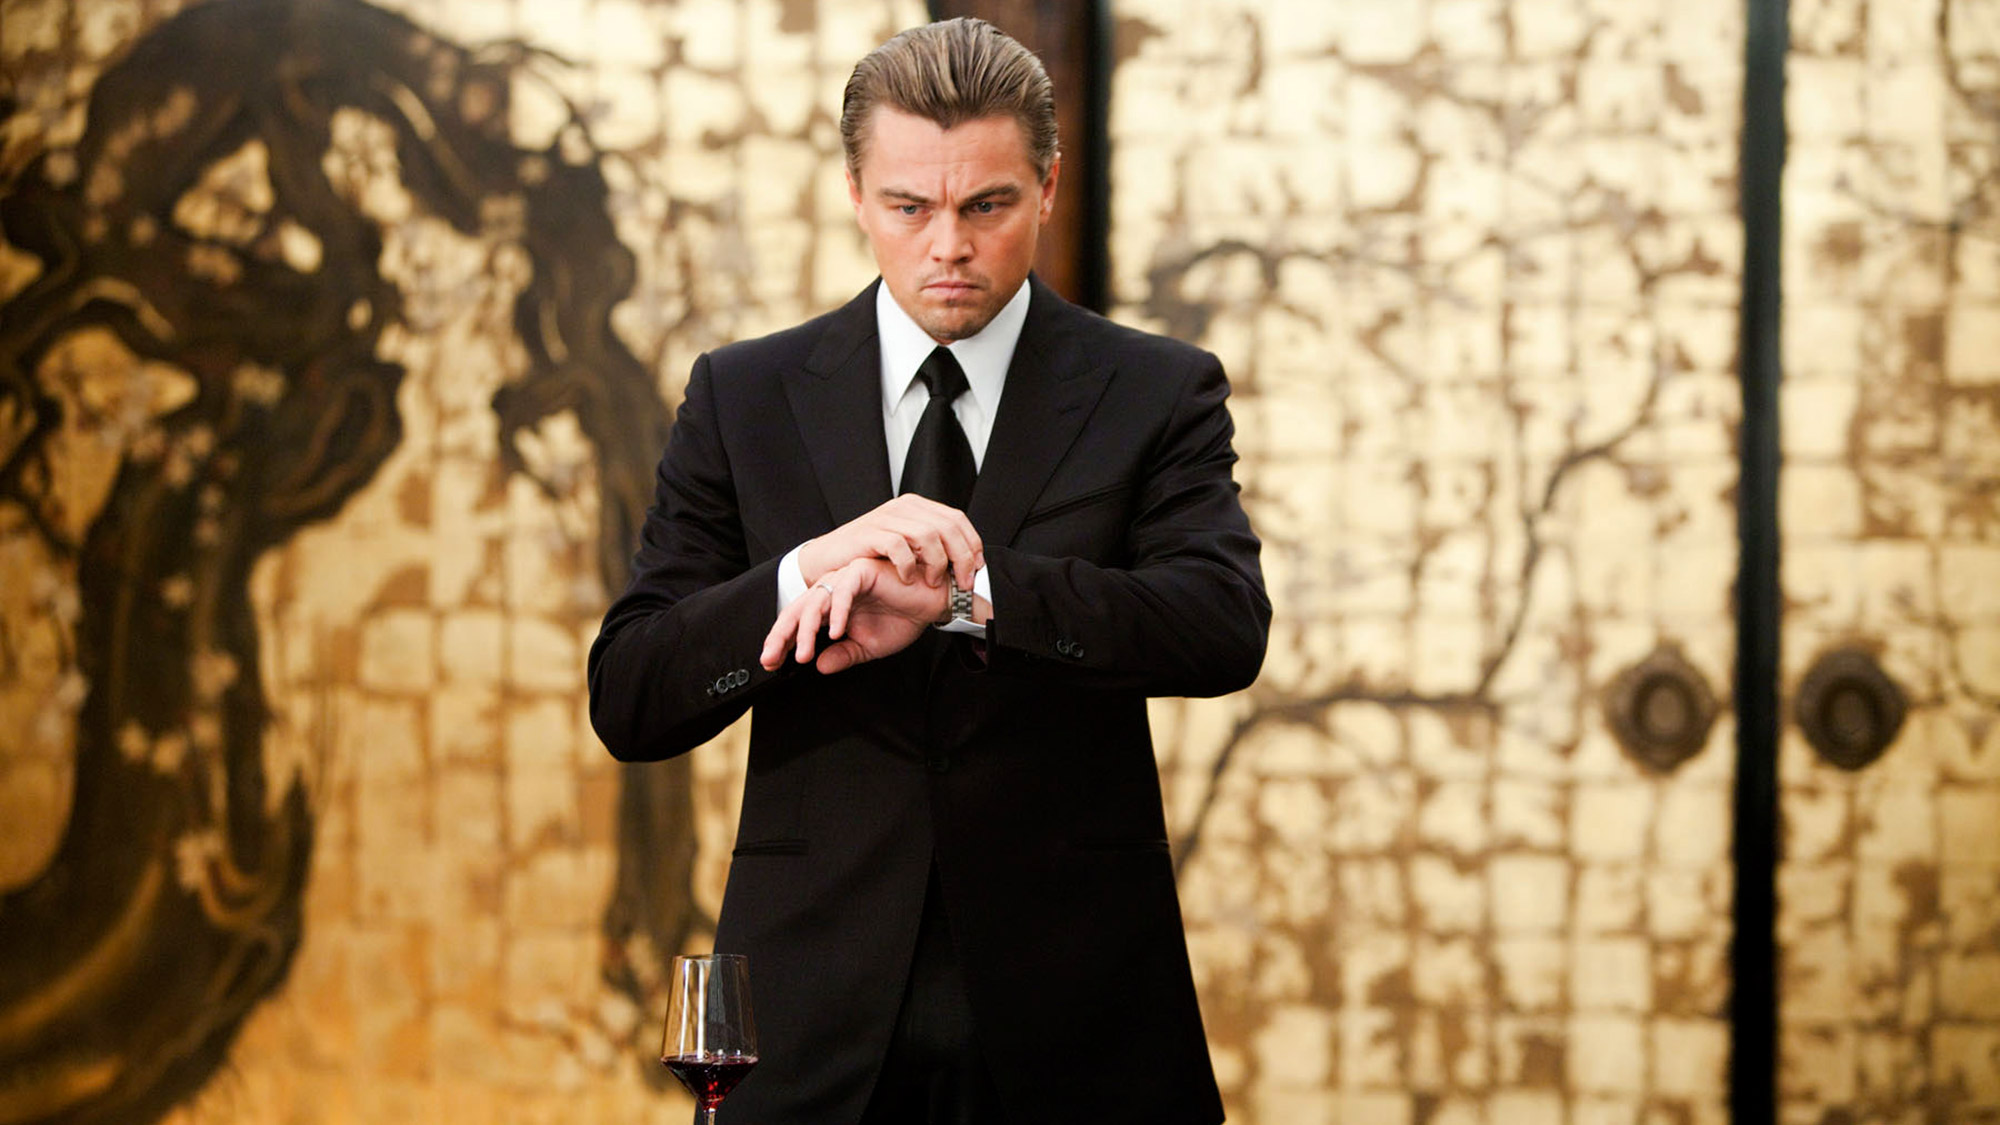 Best movies on Amazon Prime Video: Inception (2010)